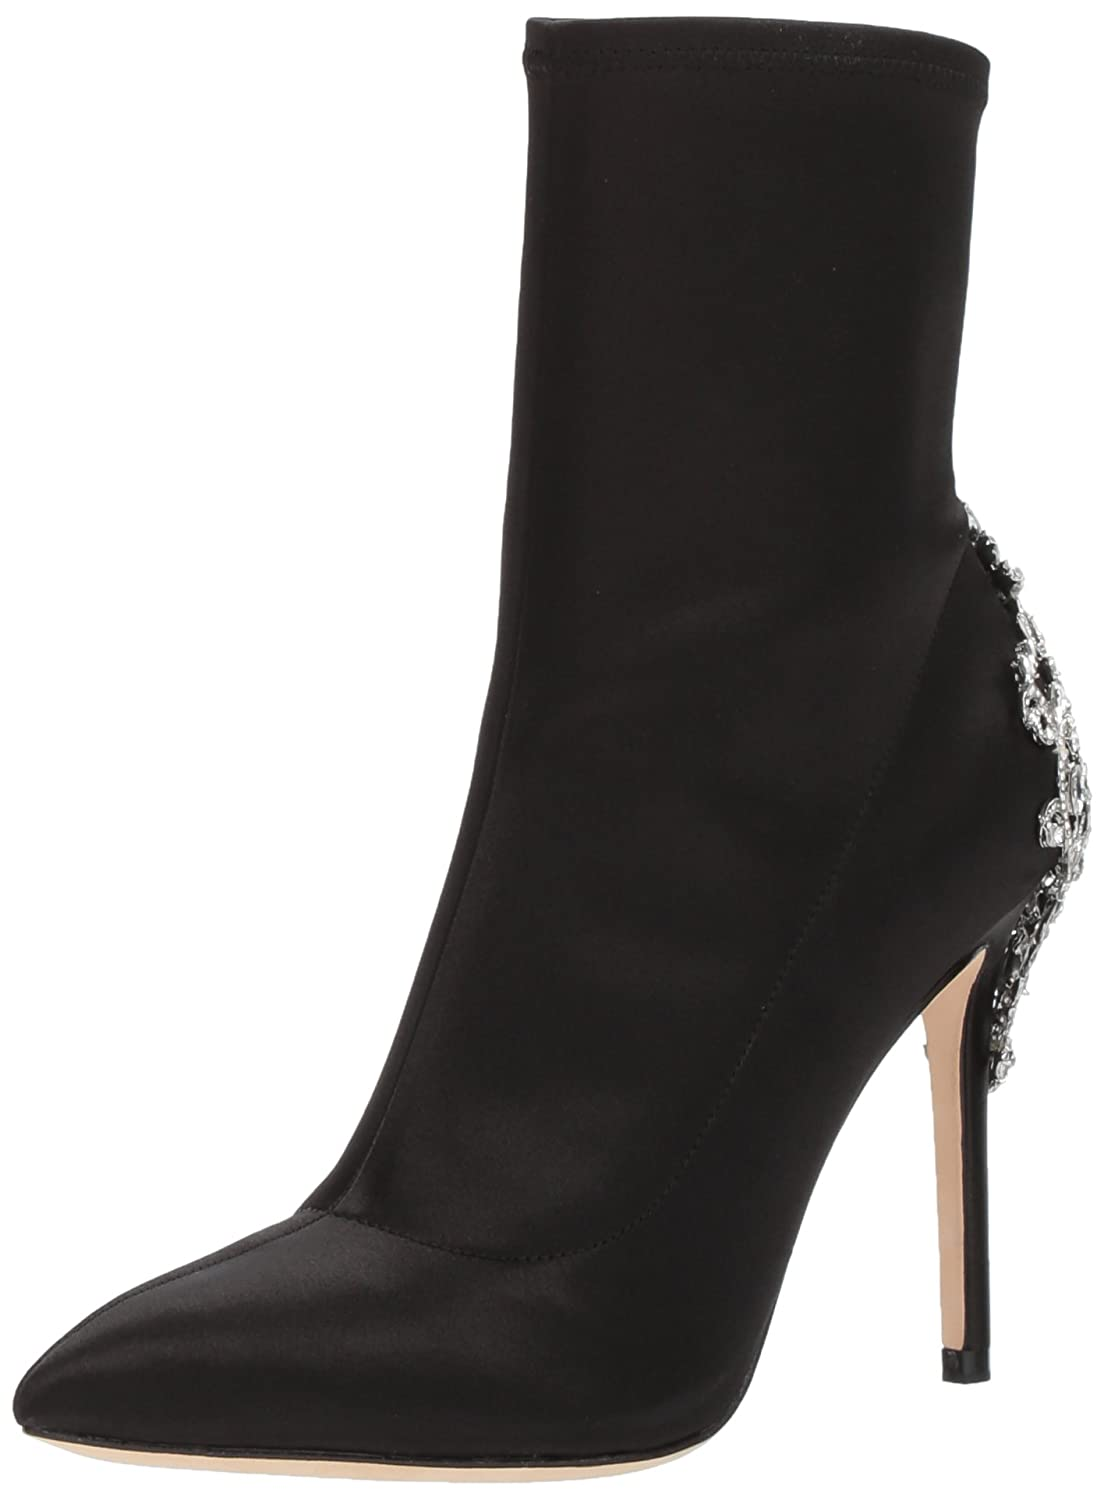 Badgley Mischka Women's Meg Ankle Boot B073538VFS 7 B(M) US|Black